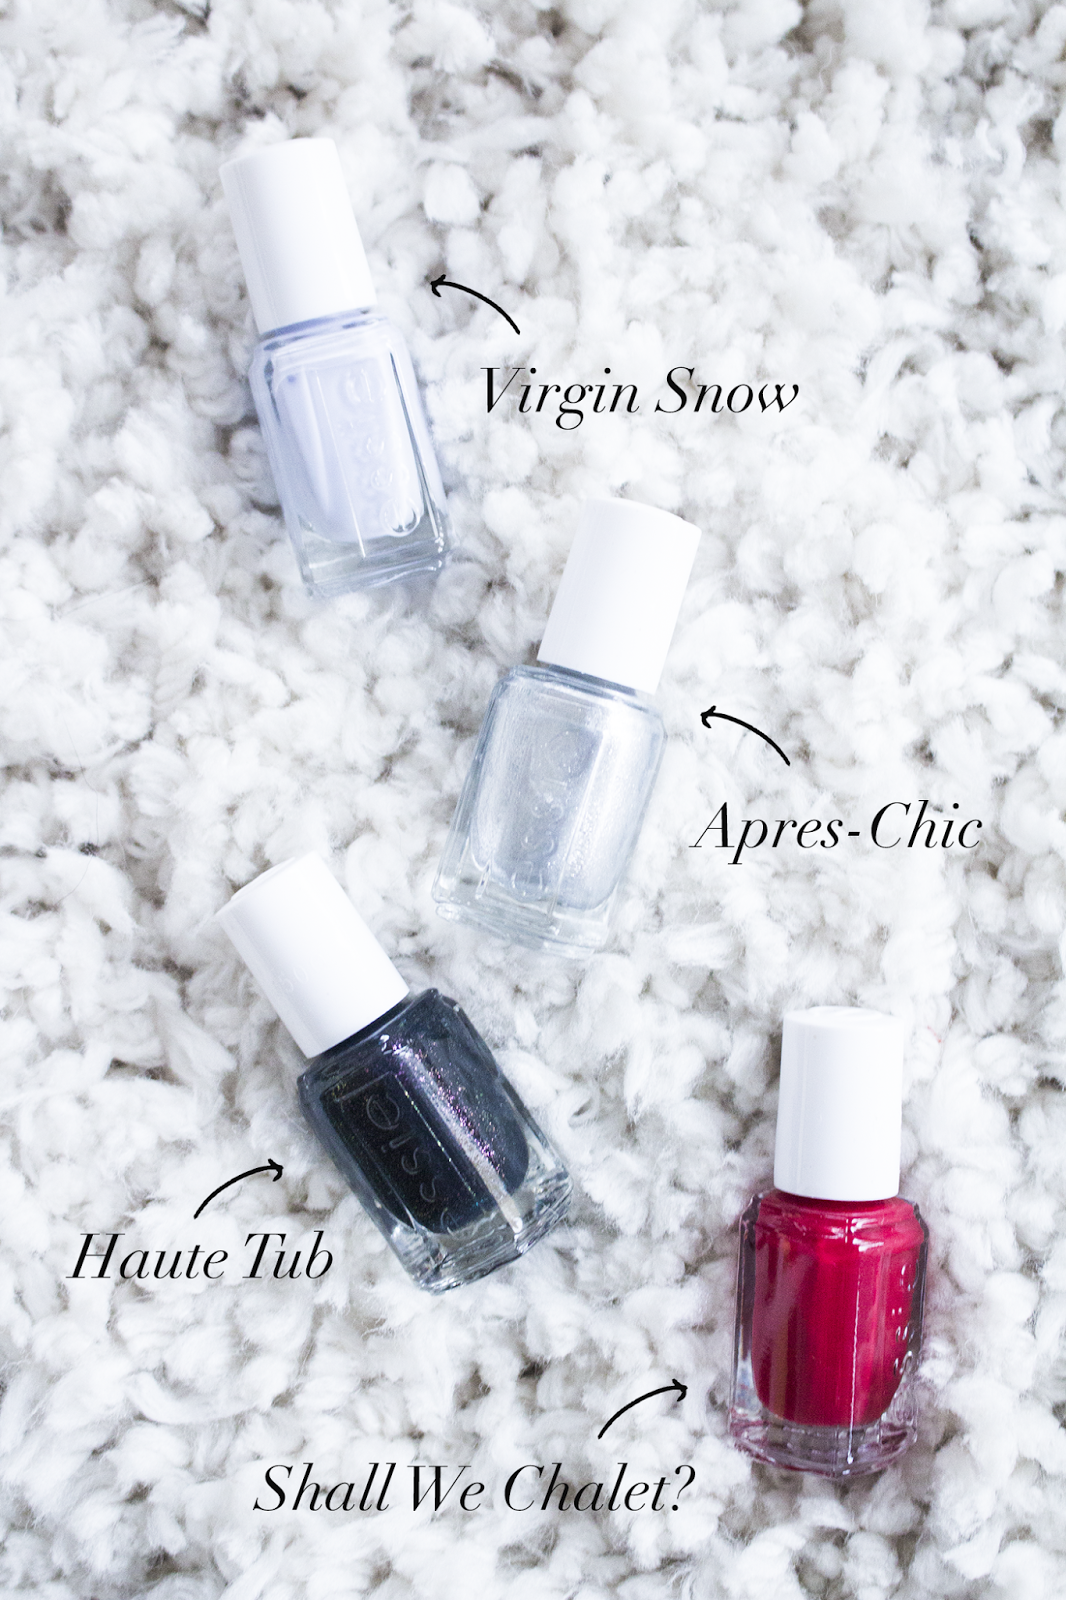 Essie Winter Collection 2015 - Tay Meets World